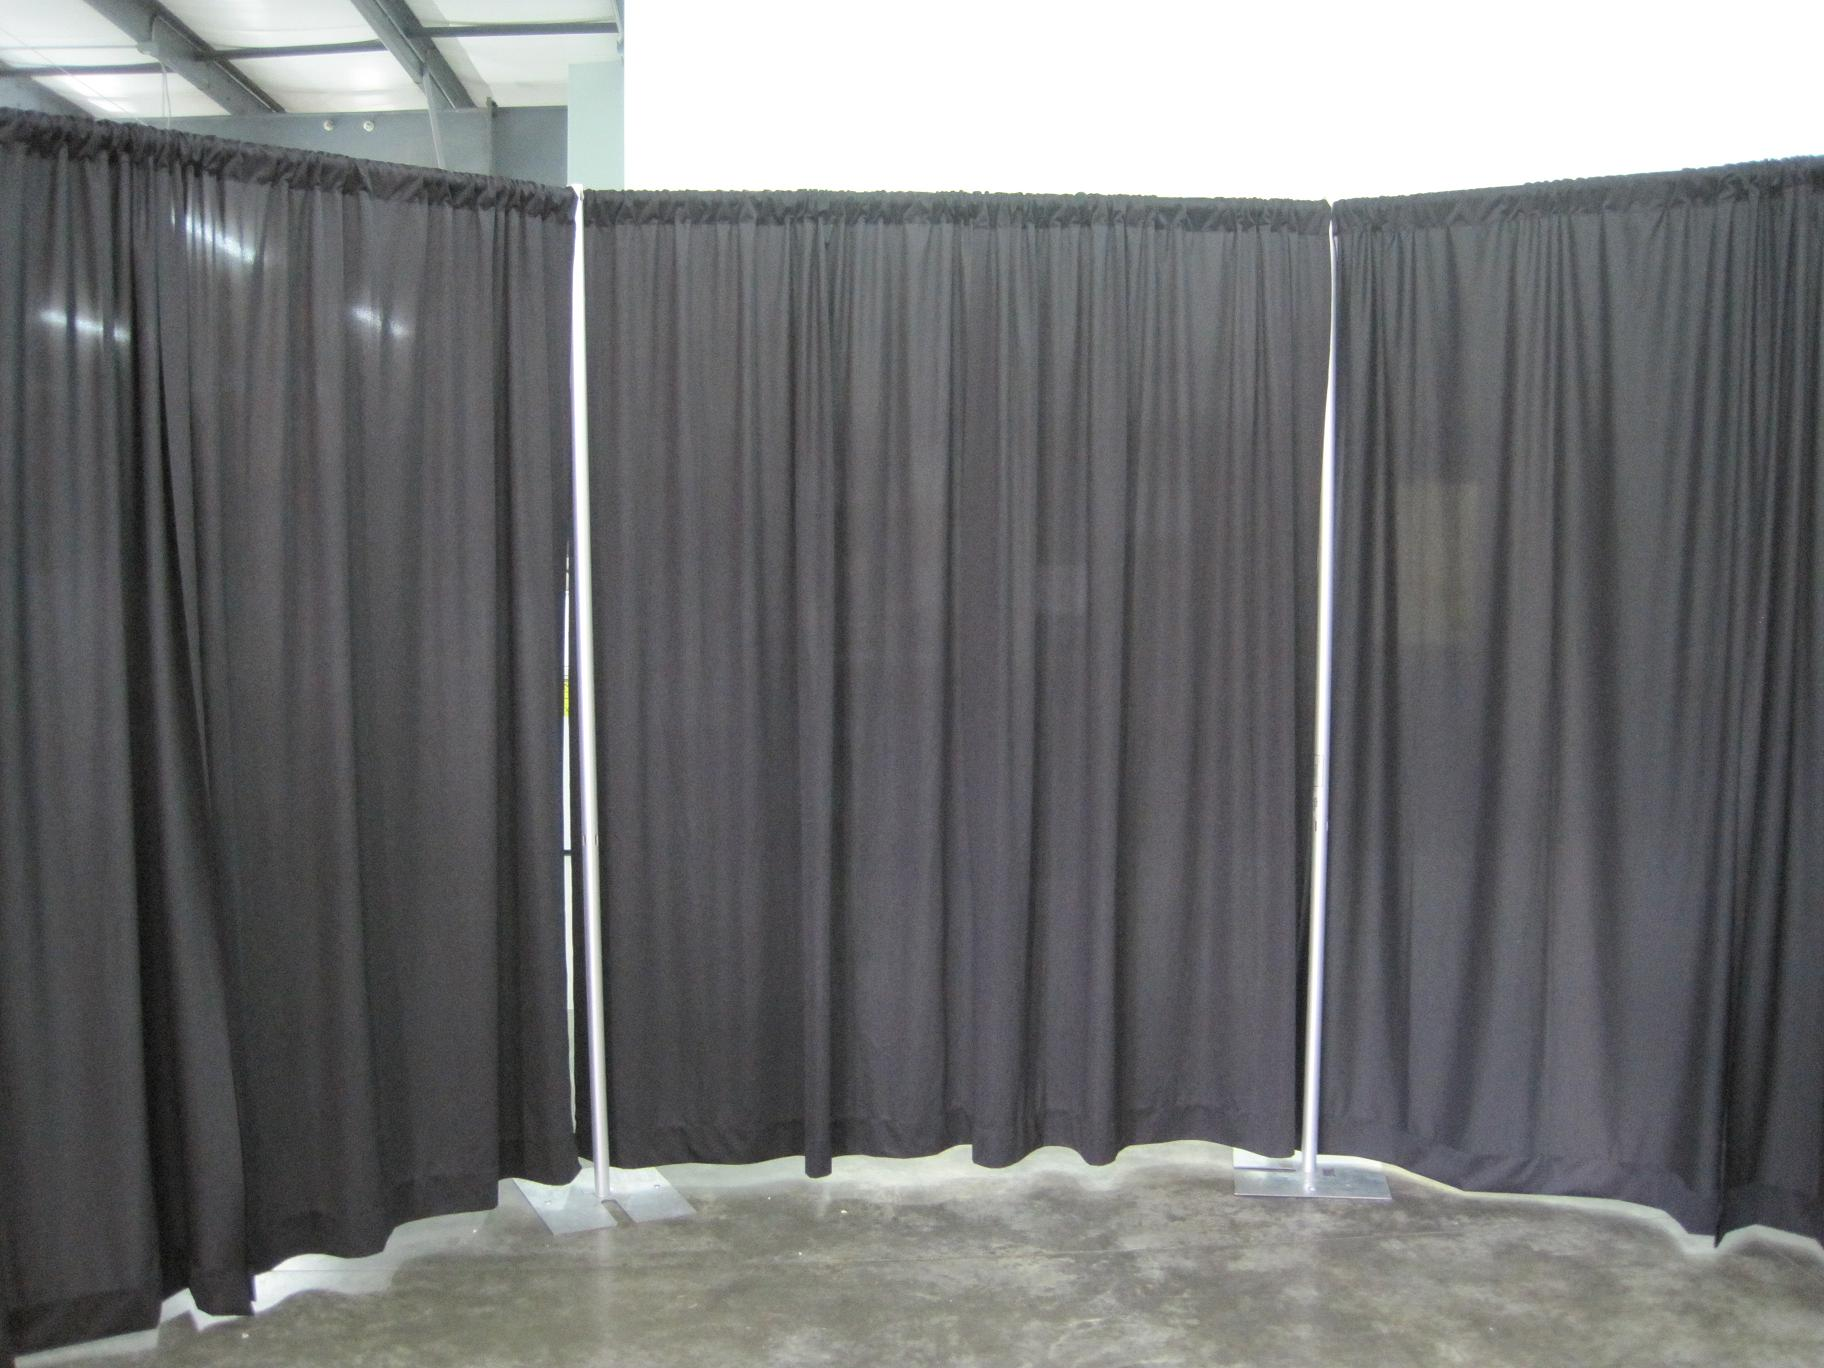 suppliers com kits cheap at showroom alibaba manufacturers quality telescopic and systems drape high drapes pipe innovative